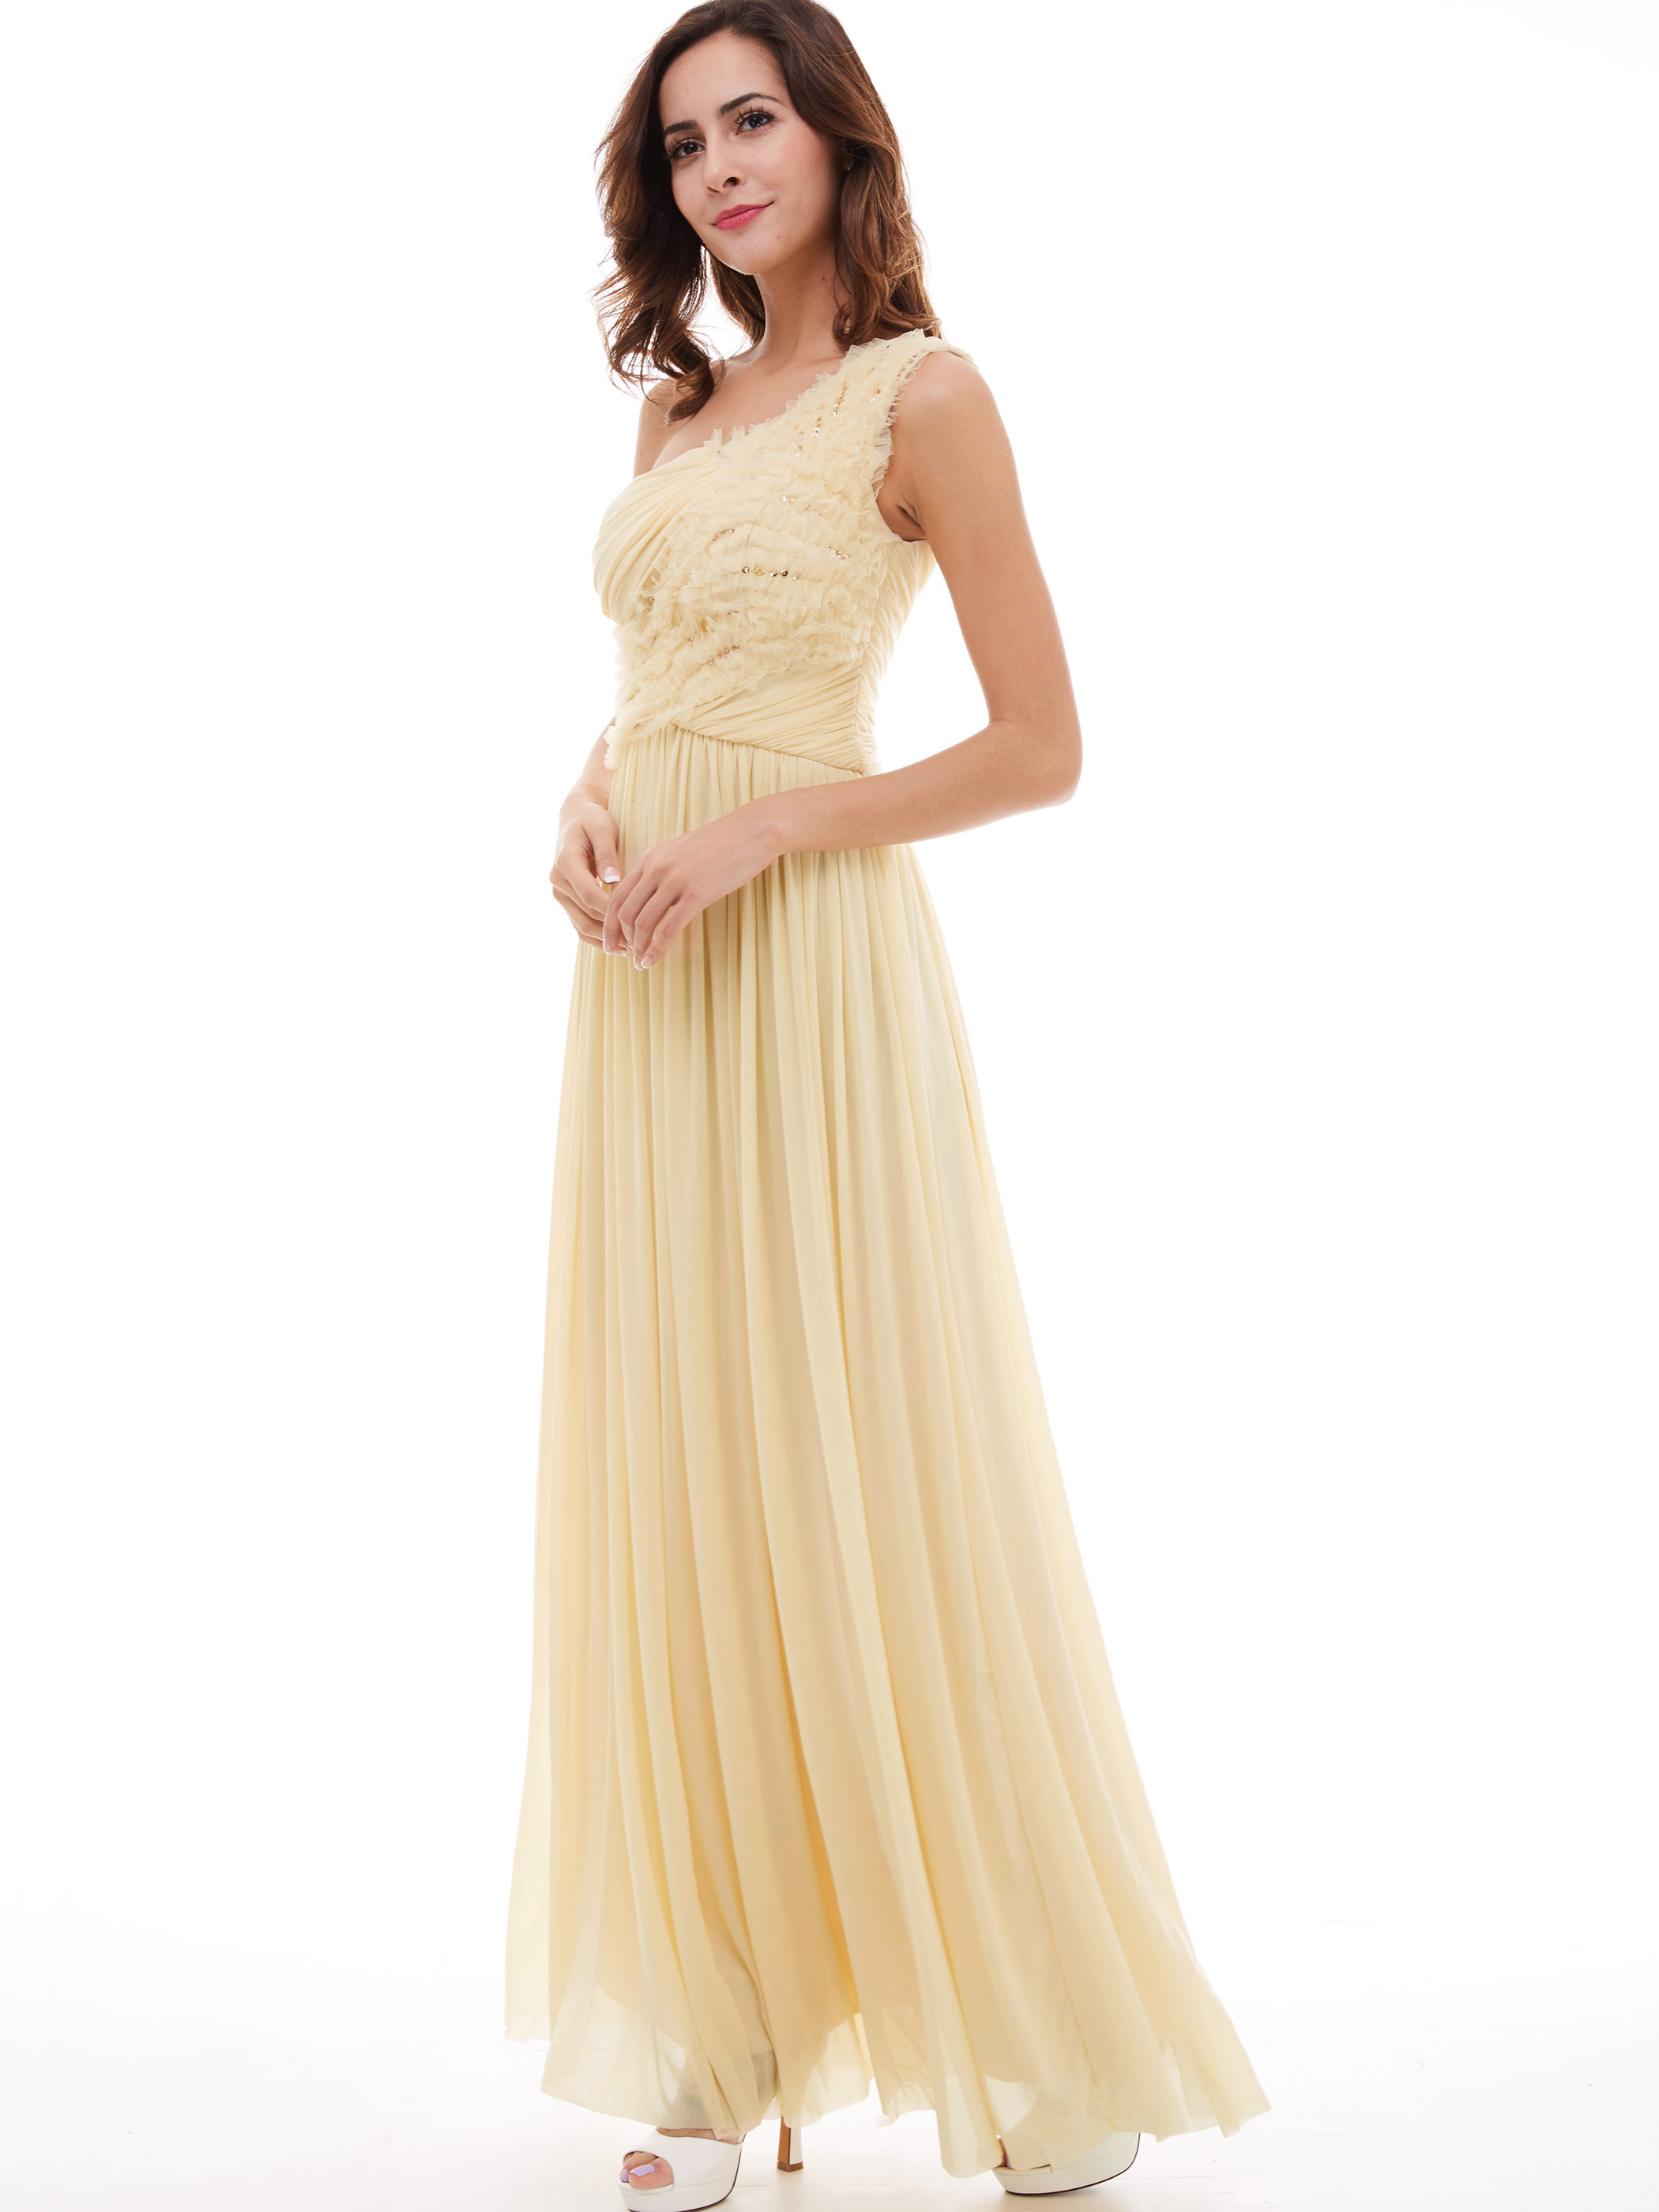 Dressv champagne long   evening     dress   cheap one shoulder draped wedding party formal   dress   a line   evening     dresses